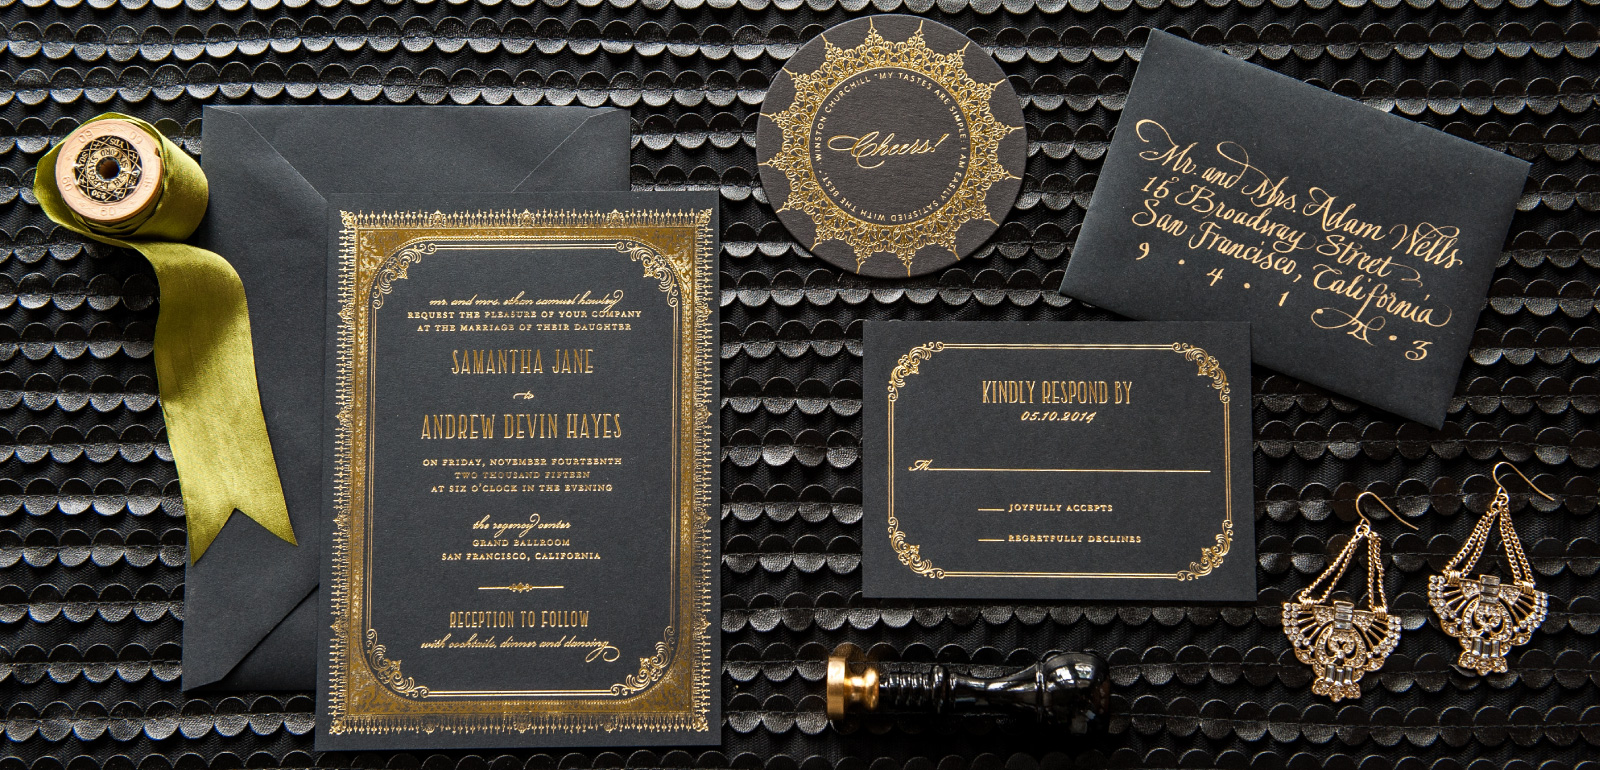 Regency Foil Stamped Wedding Invitations | Elegent Gold Foil on Black Paper